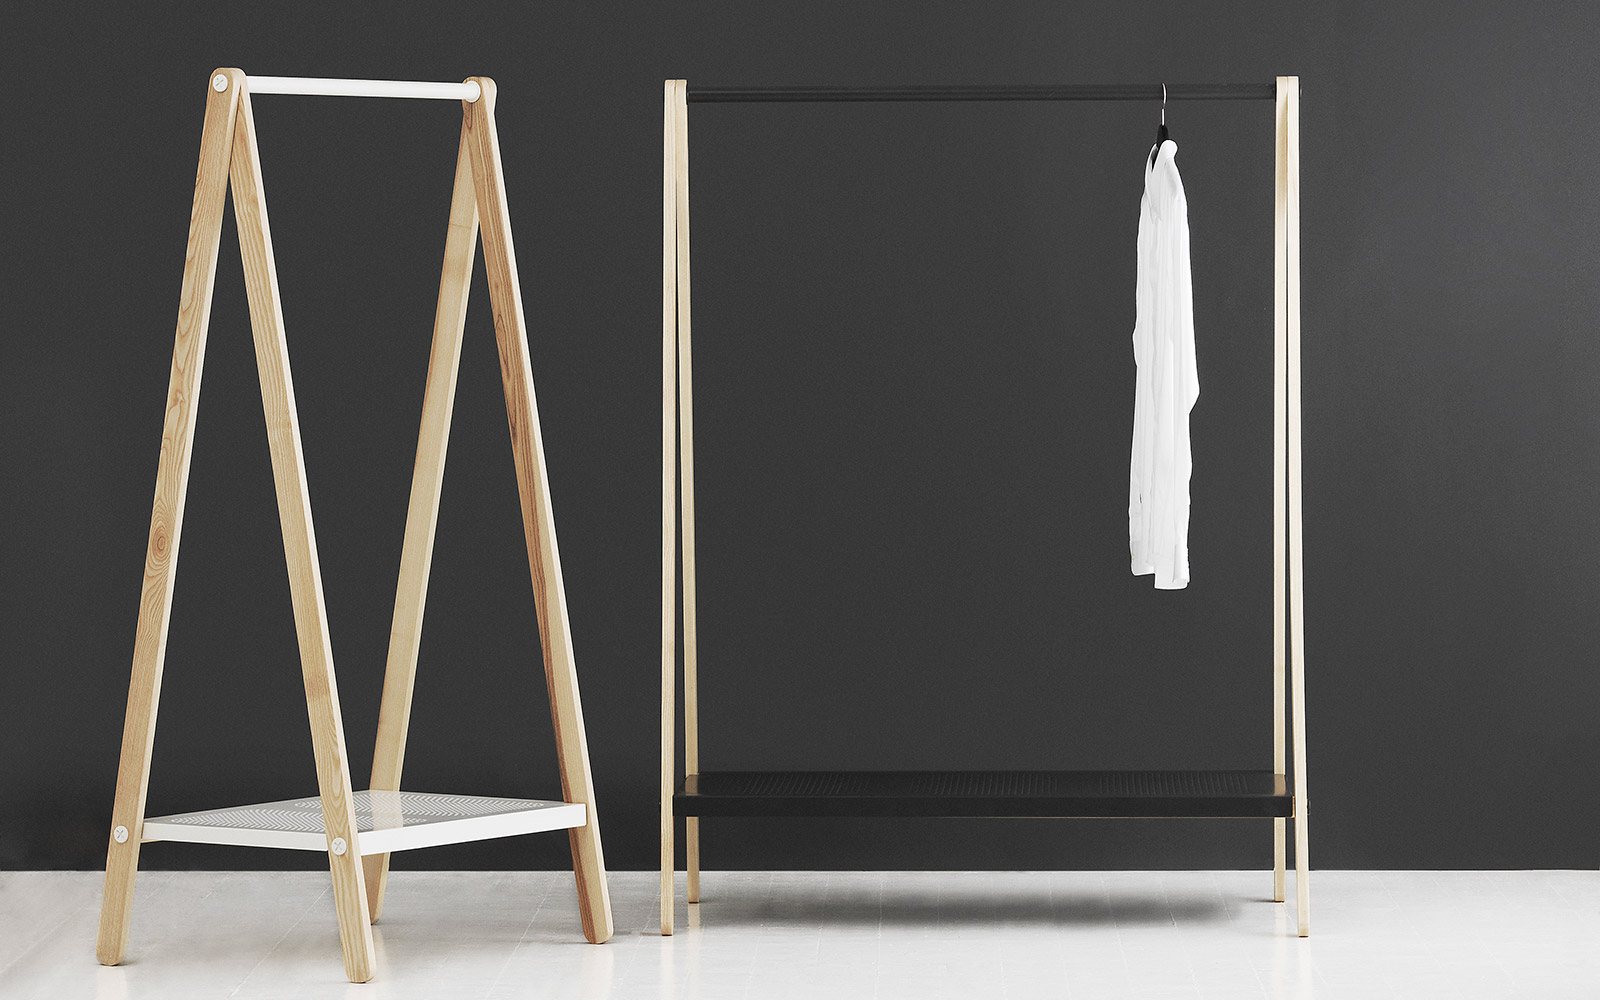 Toj is a clothes rack with an industrial and simple expression. Its function is evident and its simple construction – with a rail, shelf and trusses – provides space for clothes, shoes and bags.